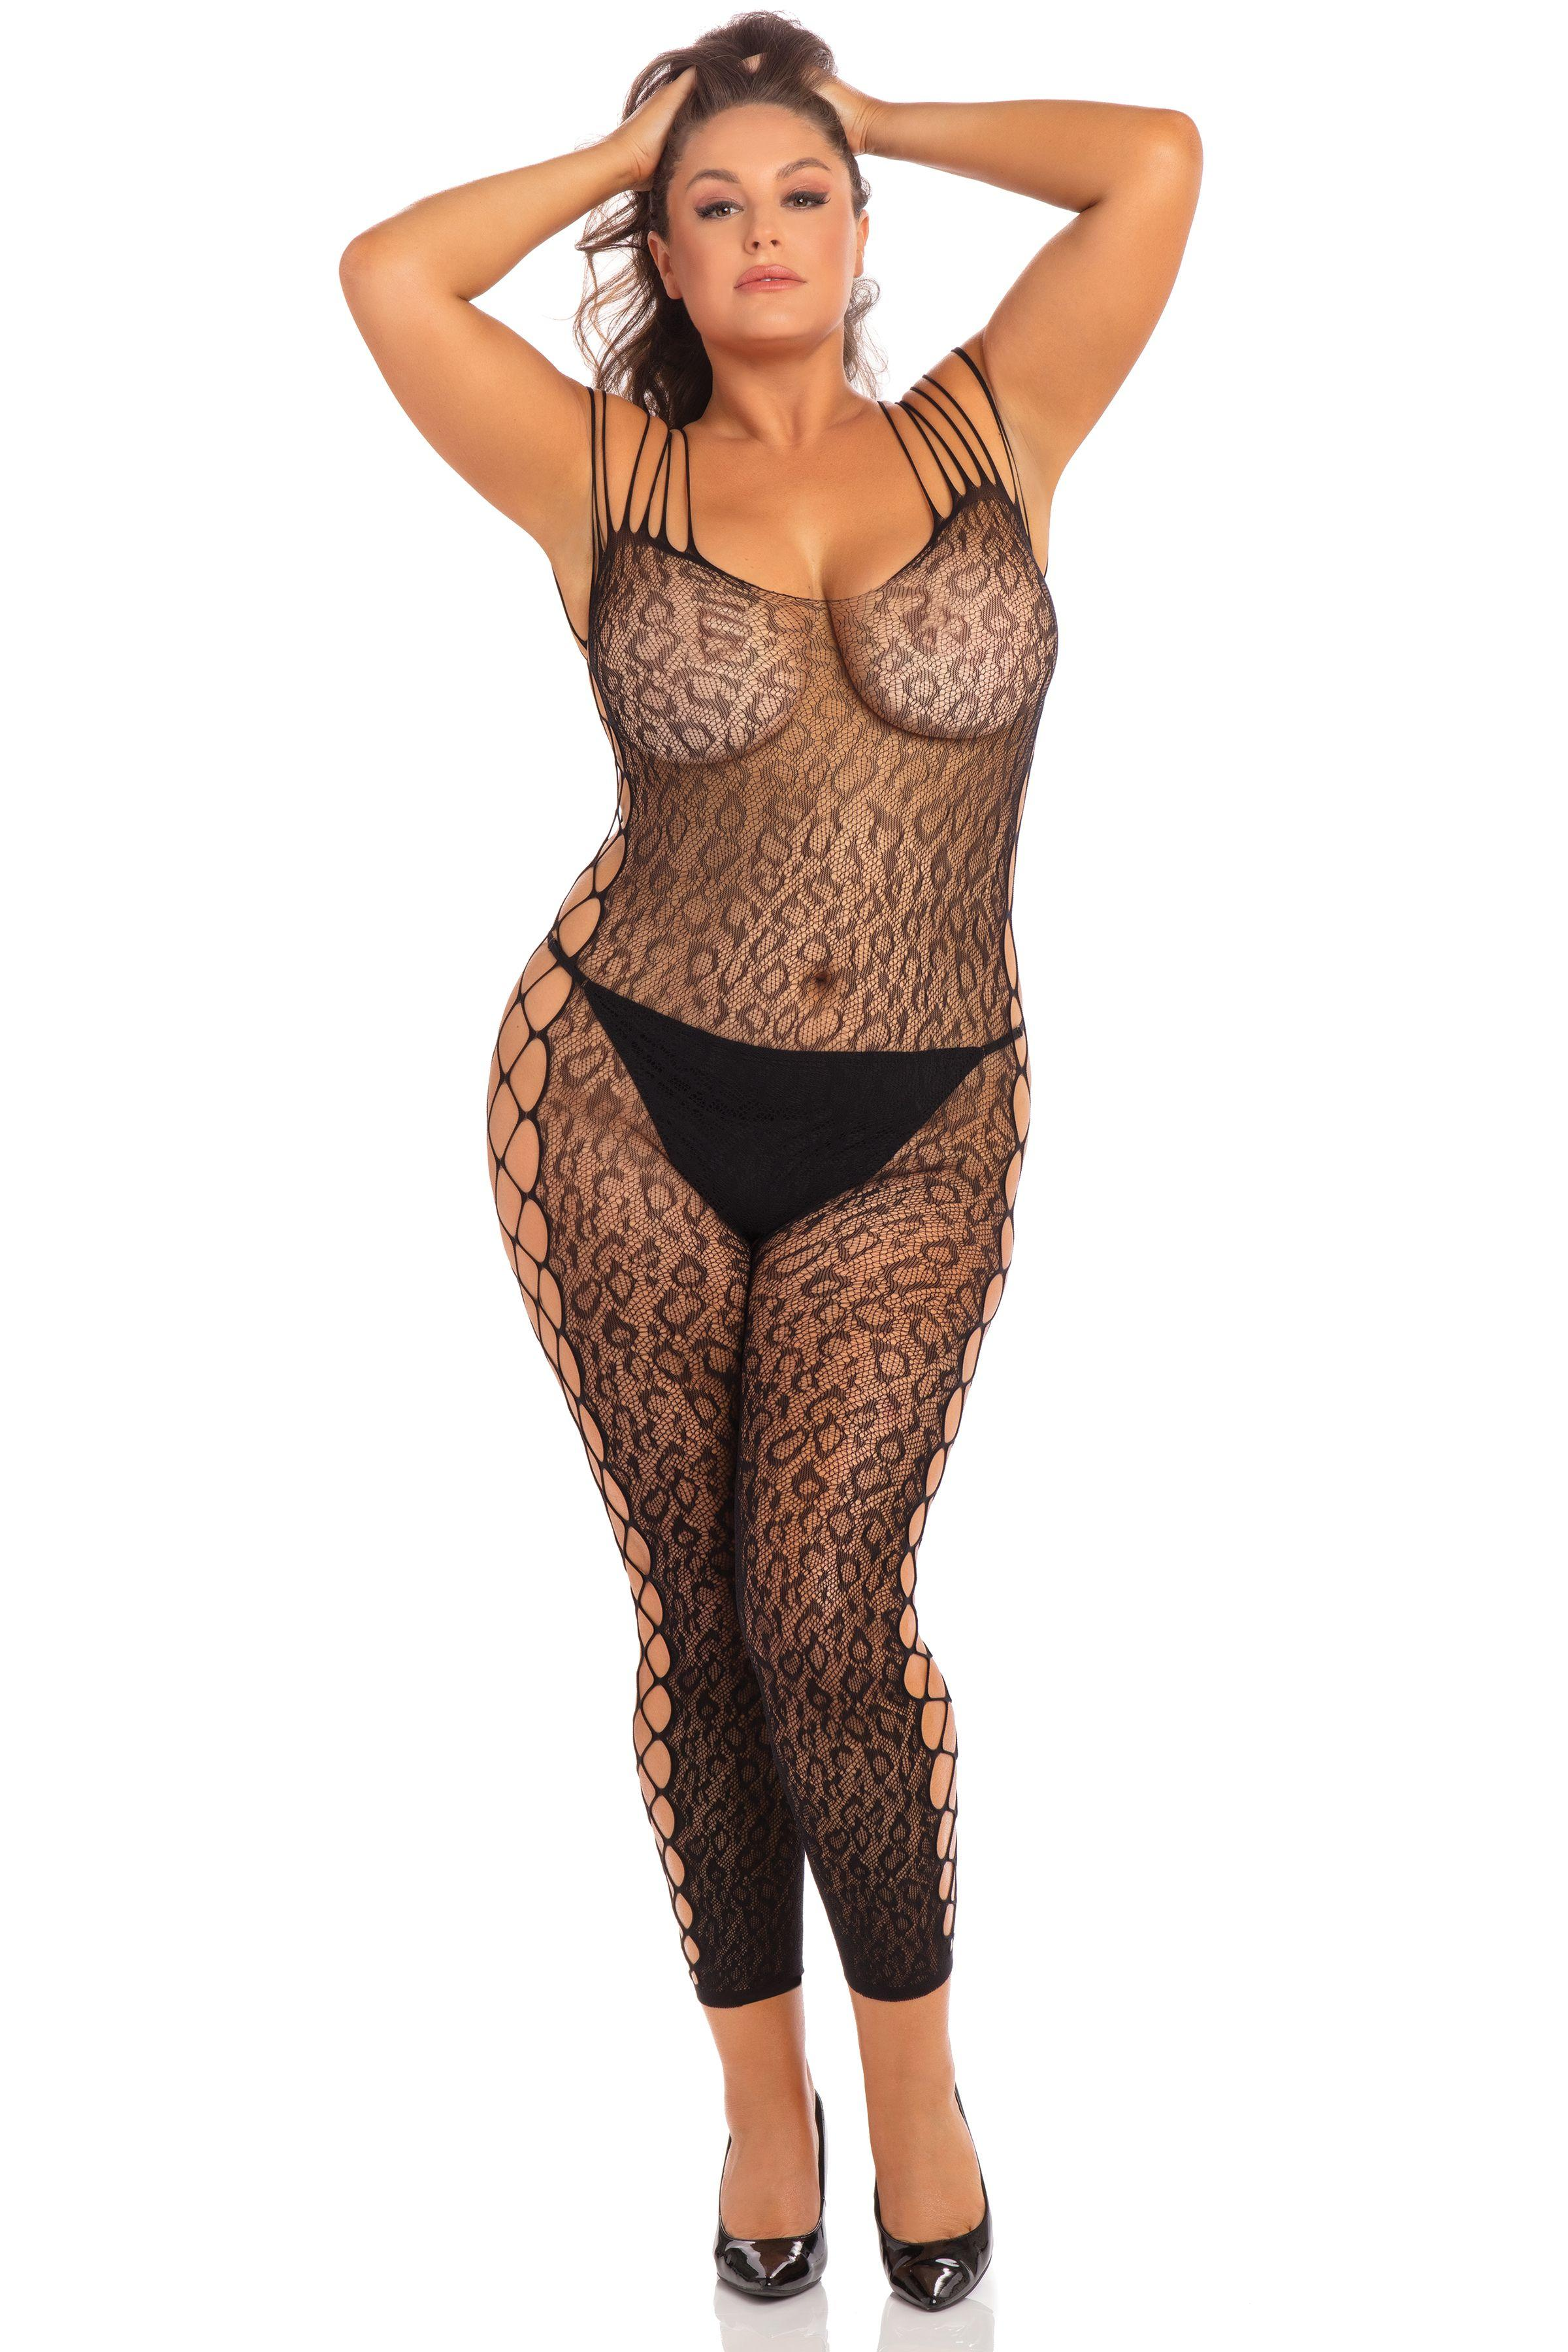 Animal Crotchless Bodystocking